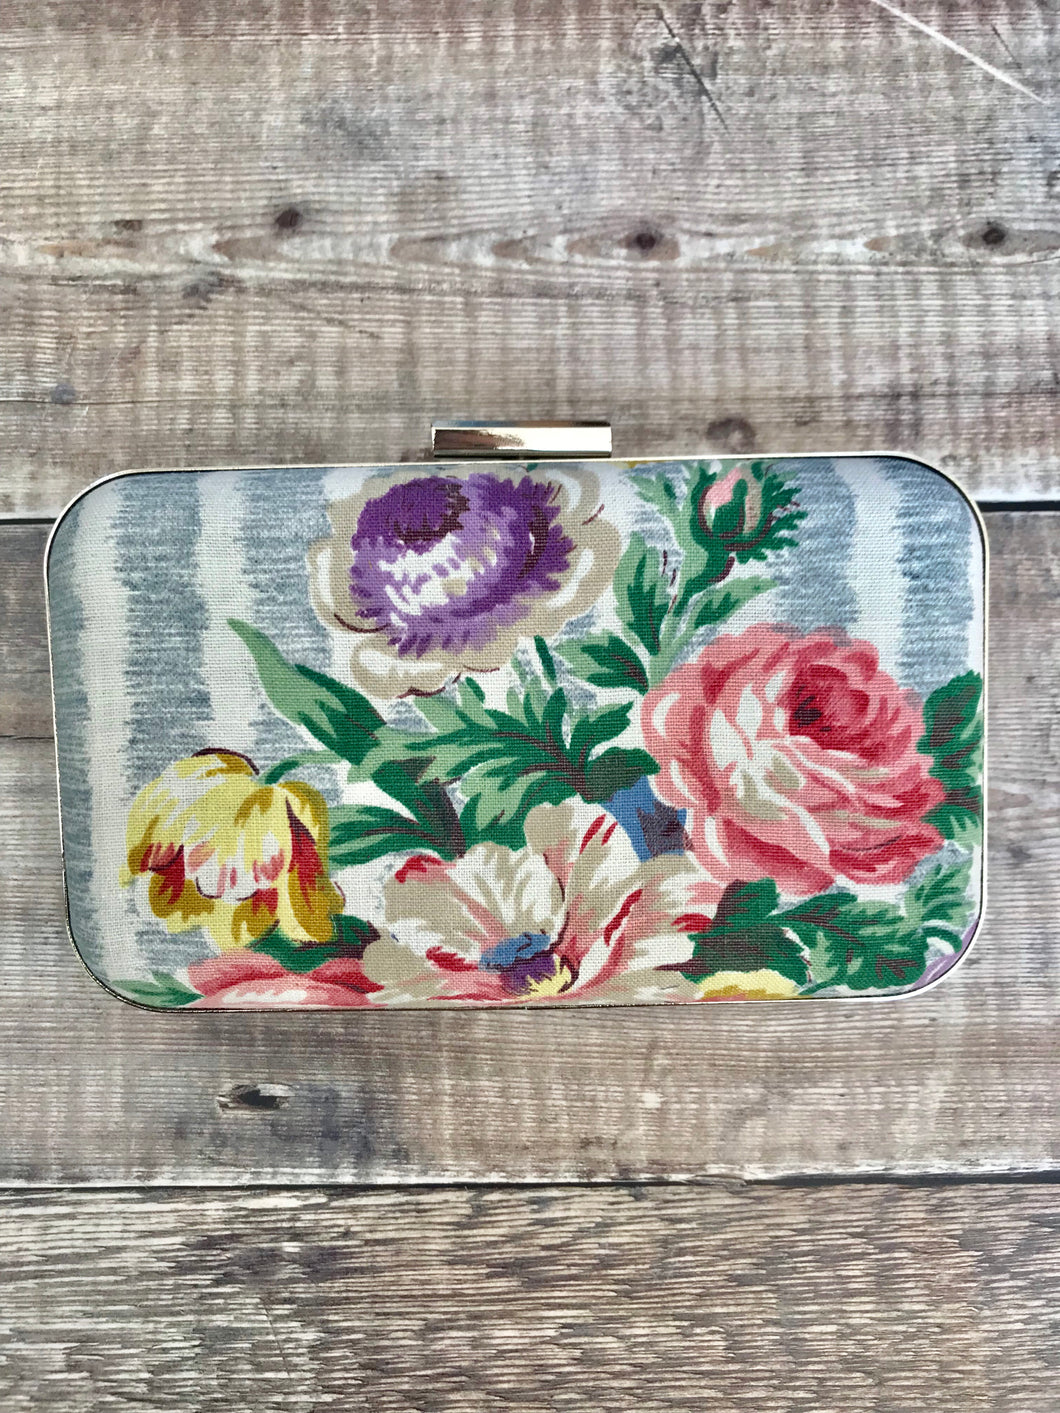 Vintage Rose Clutch Bag